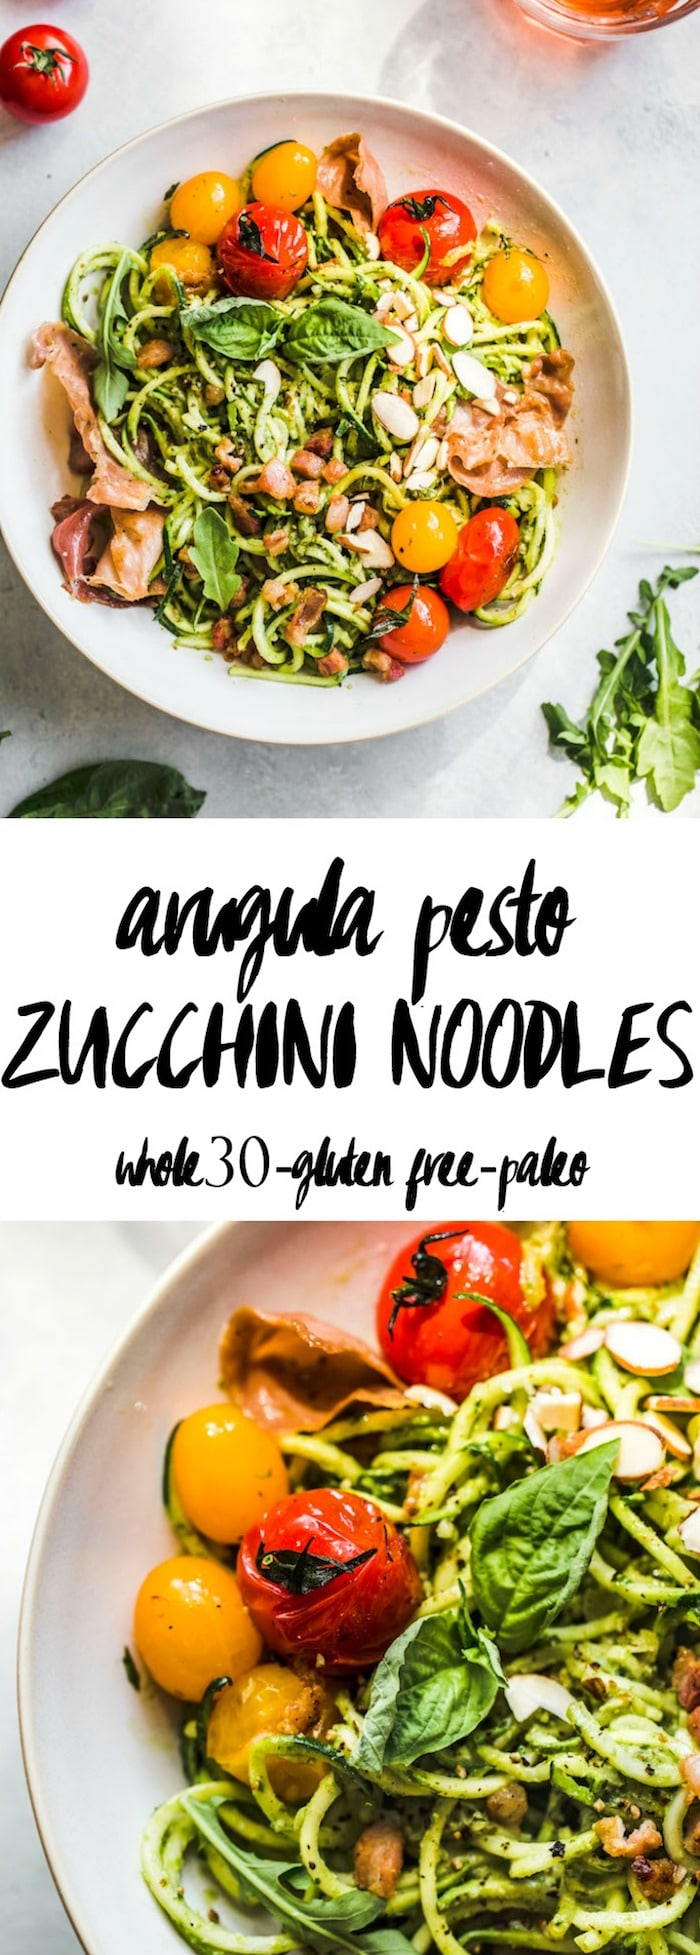 Arugula Pesto Zucchini Noodle Bowl with tomatoes and prosciutto--whole30, too!